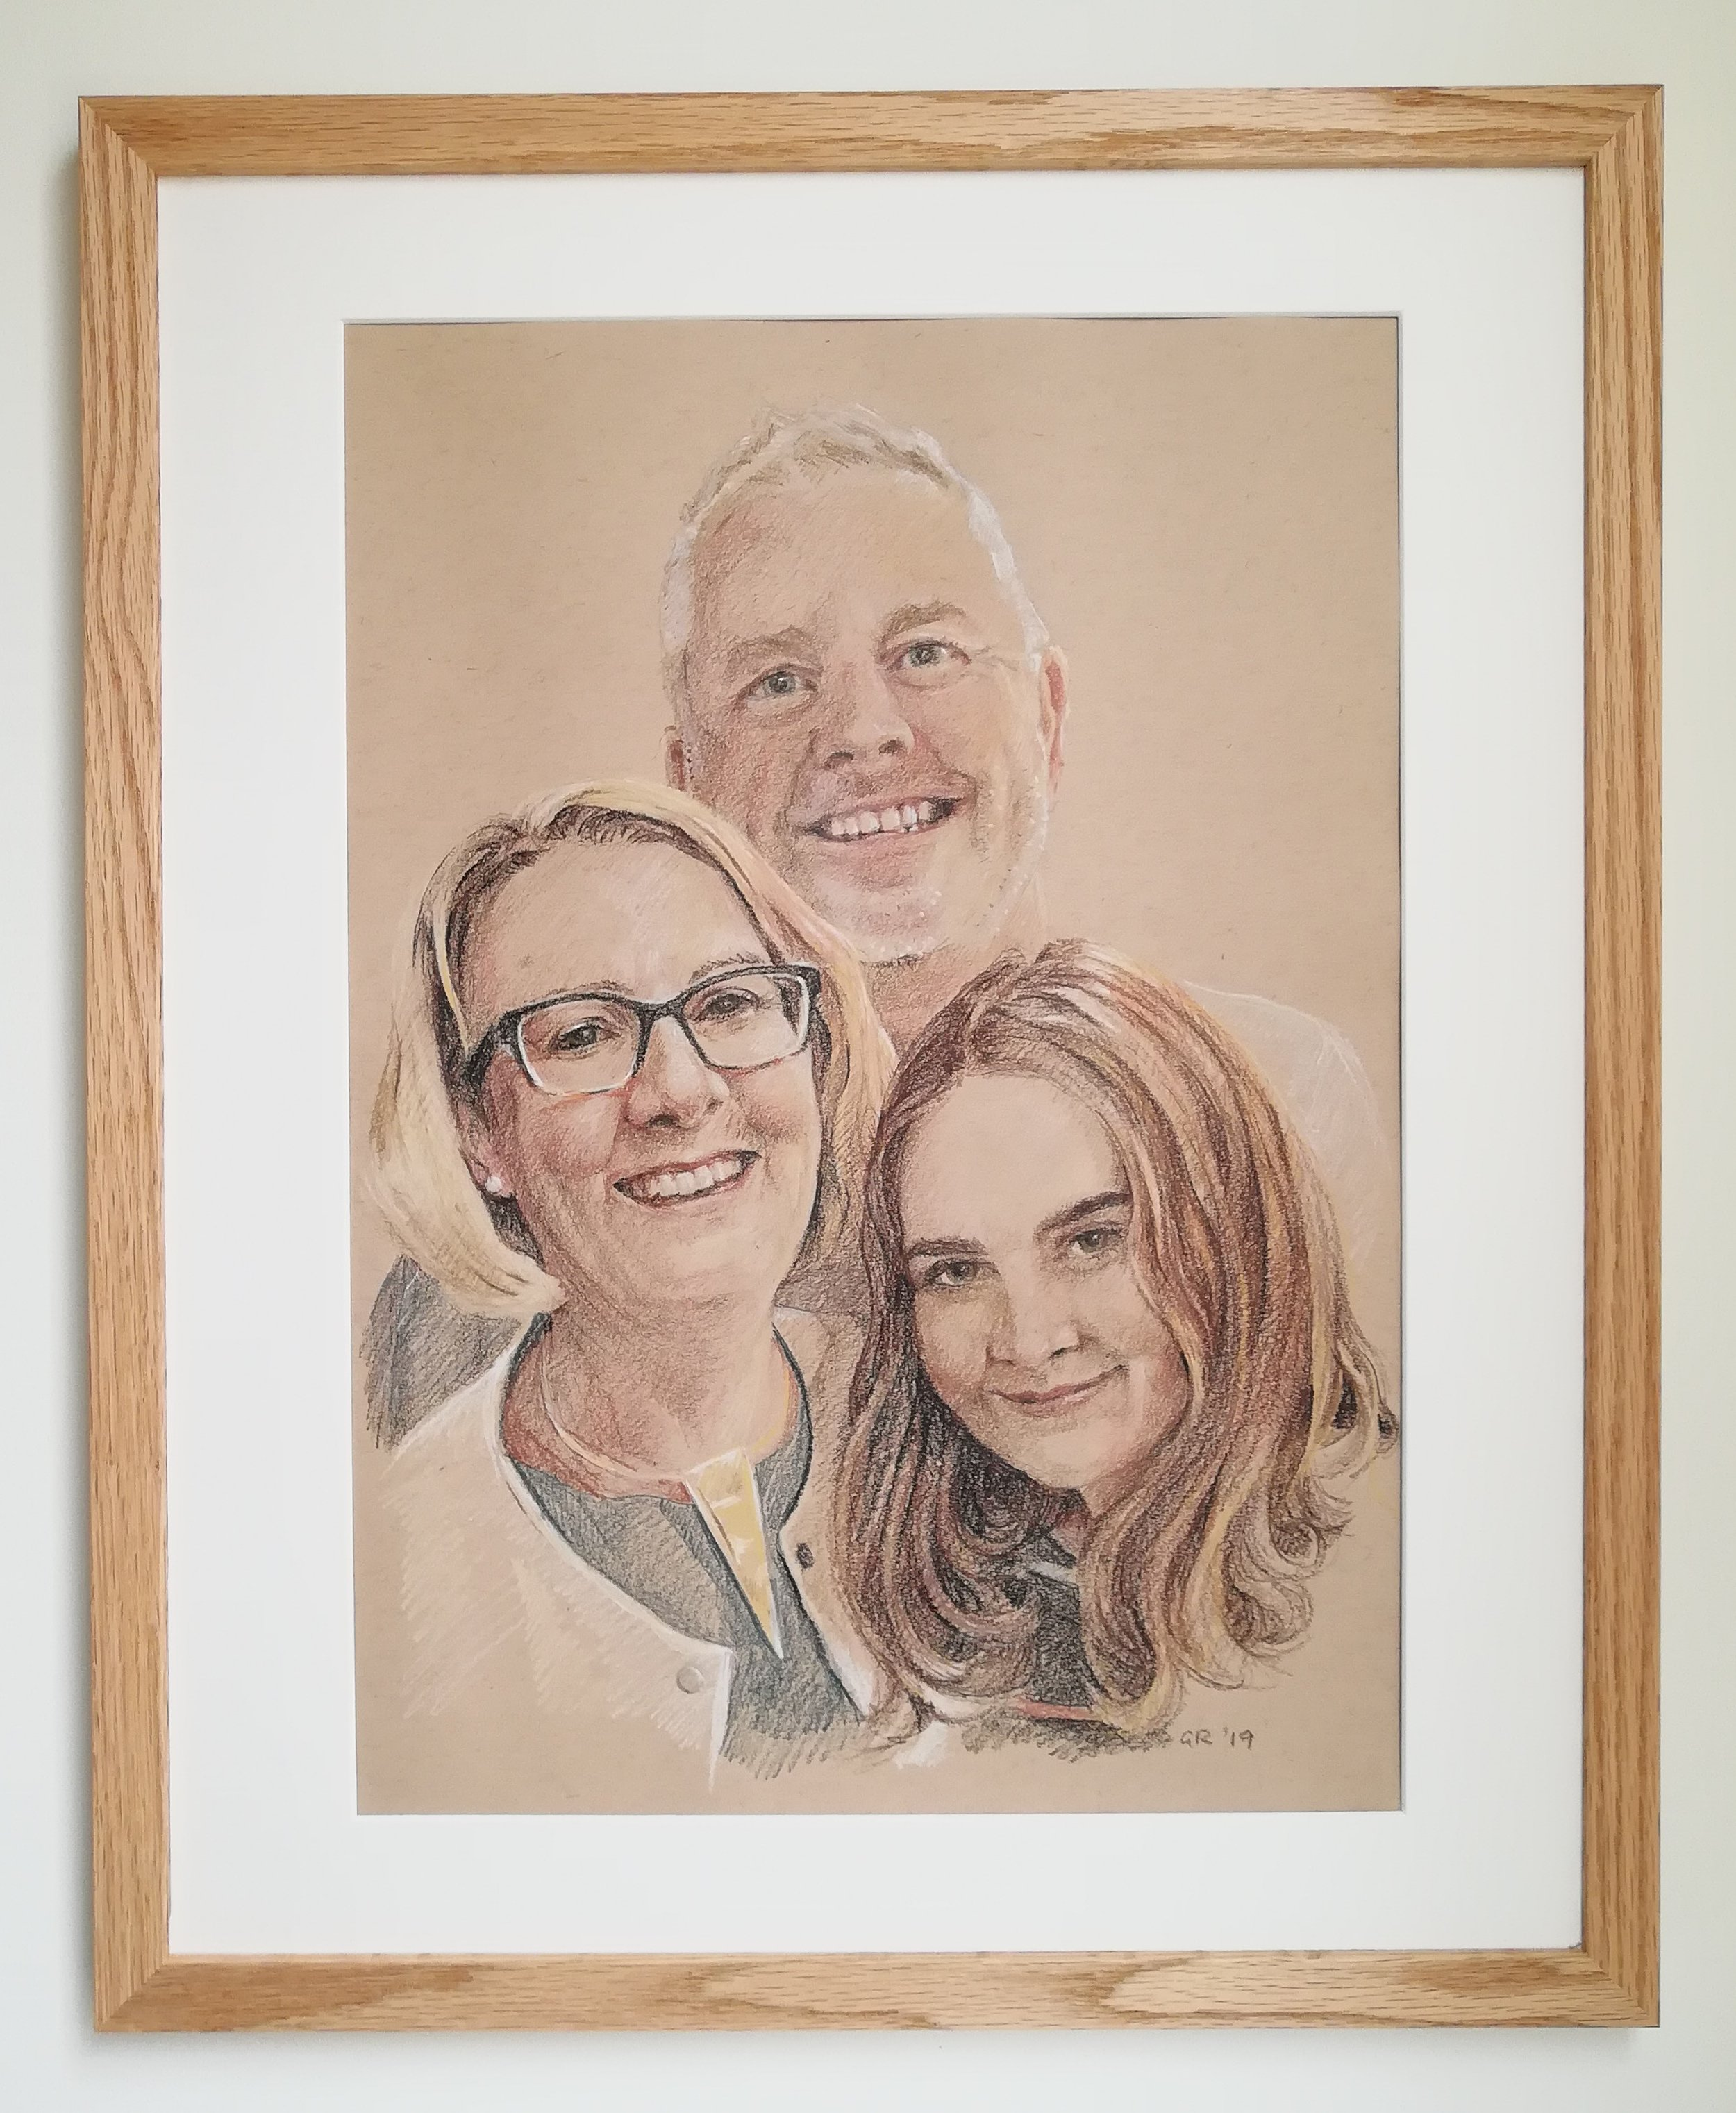 Coloured pencil people from combined photos